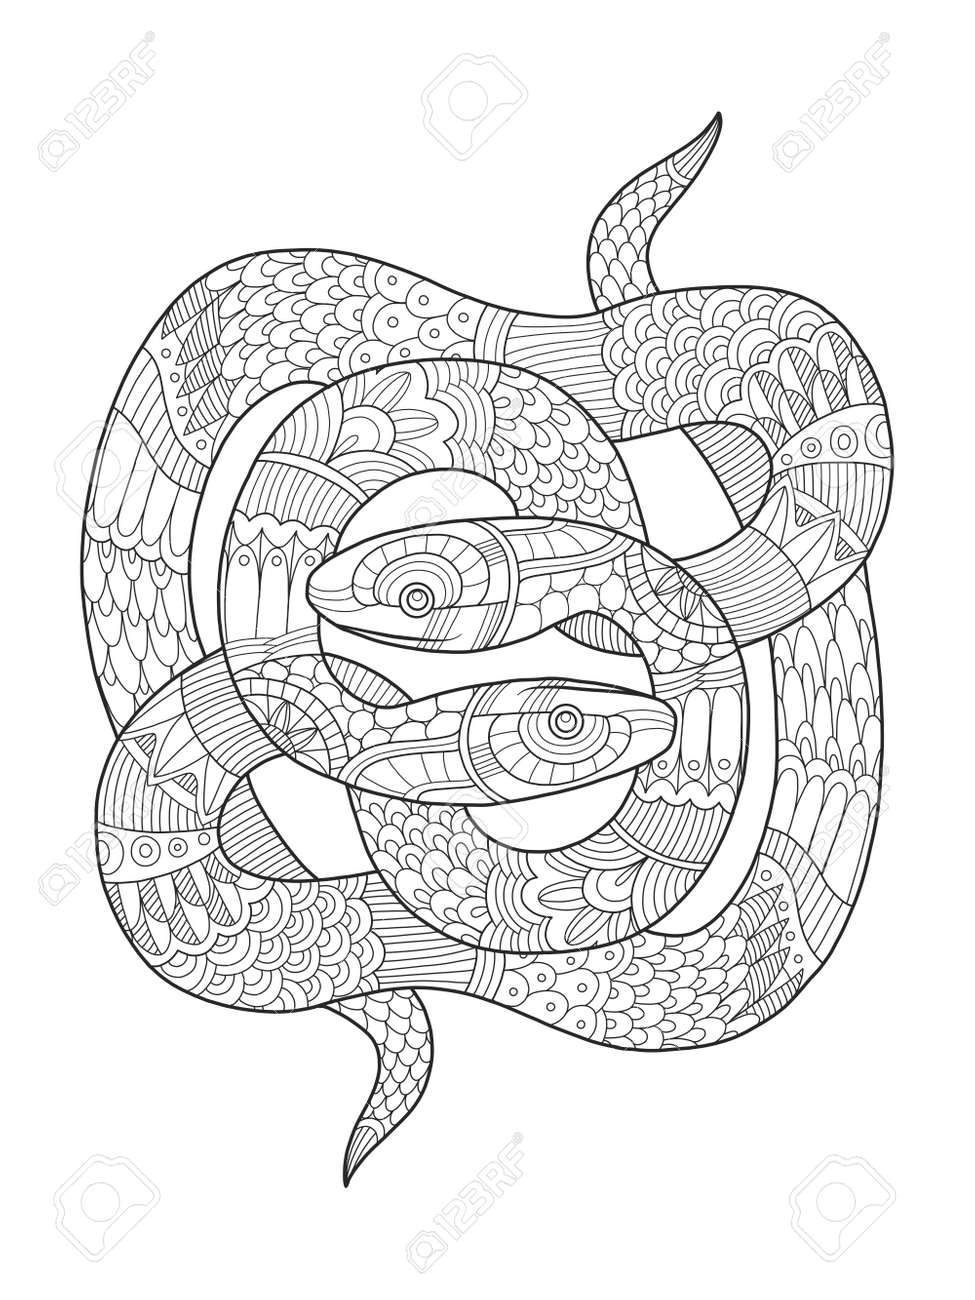 Snake Coloring Book For Adults Vector Illustration. Anti-stress ...